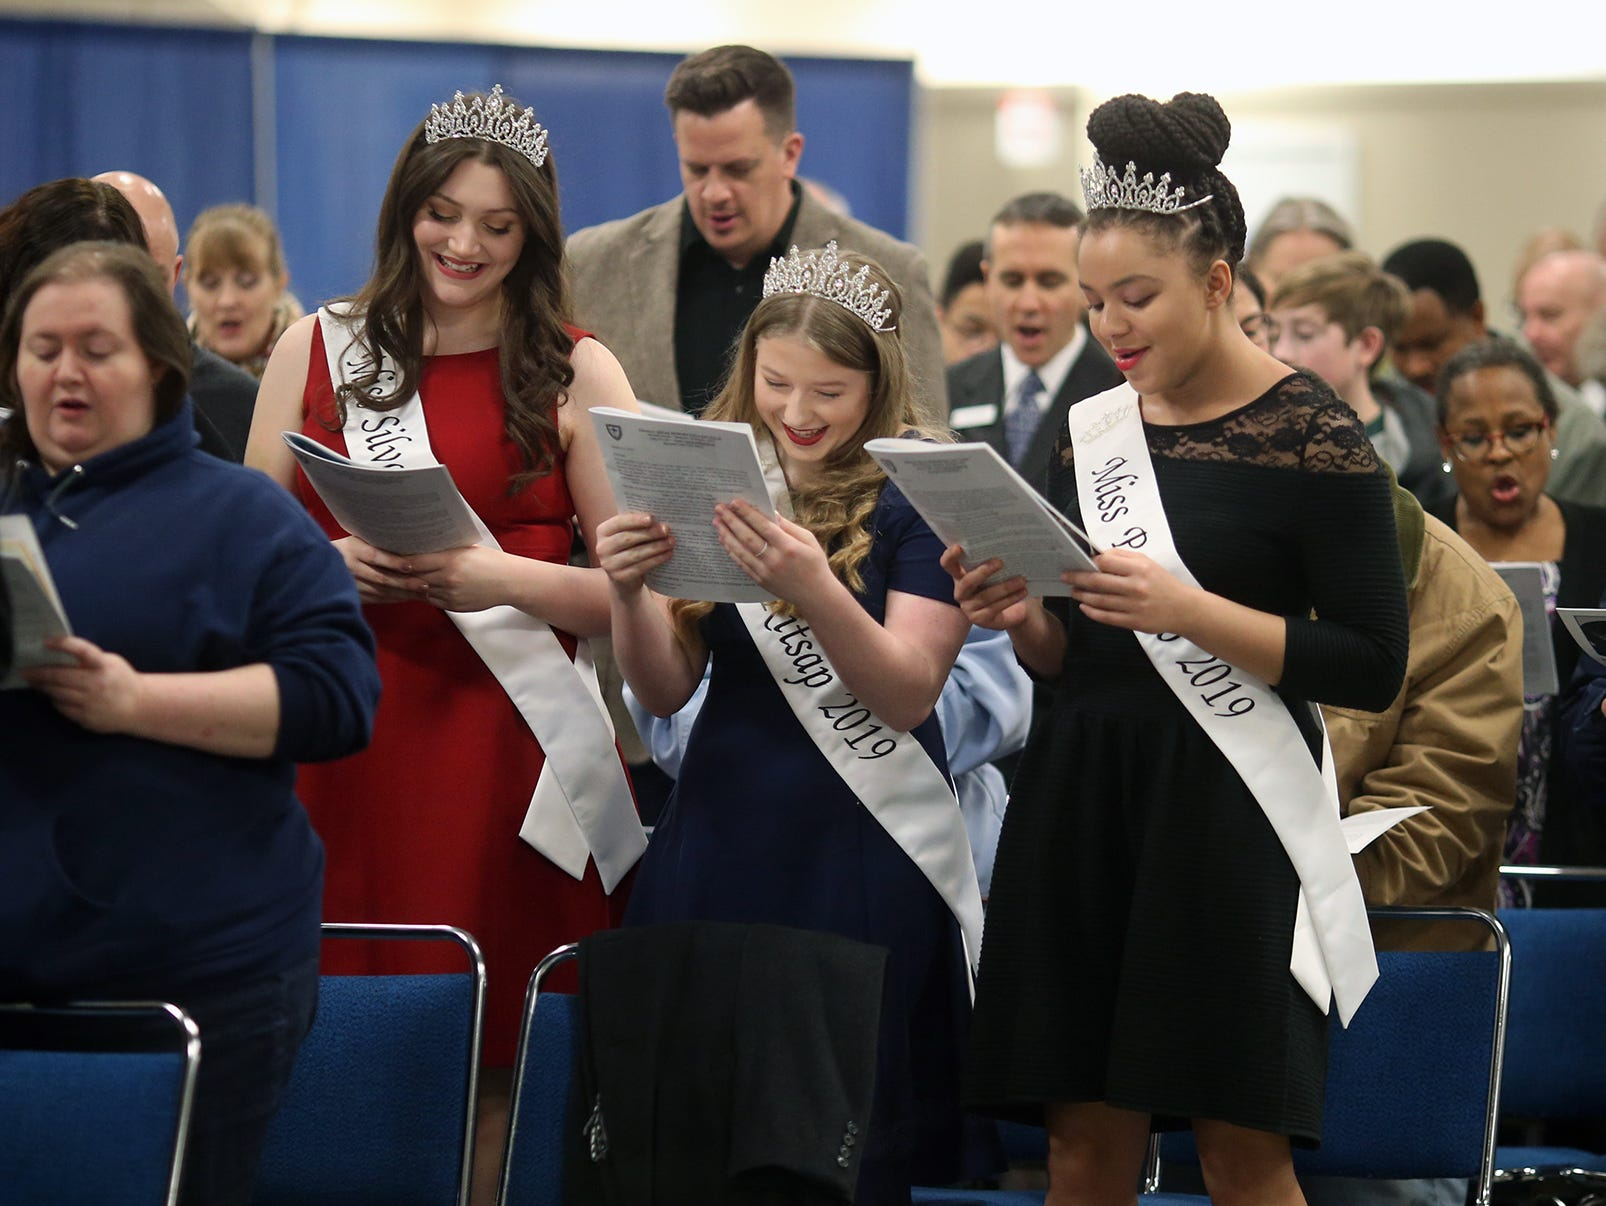 The 25th annual Reverend Dr. Martin Luther King, Jr. celebration was held at Presidents' Hall at the Kitsap County Fairgrounds on Monday, January, 21 , 2019.